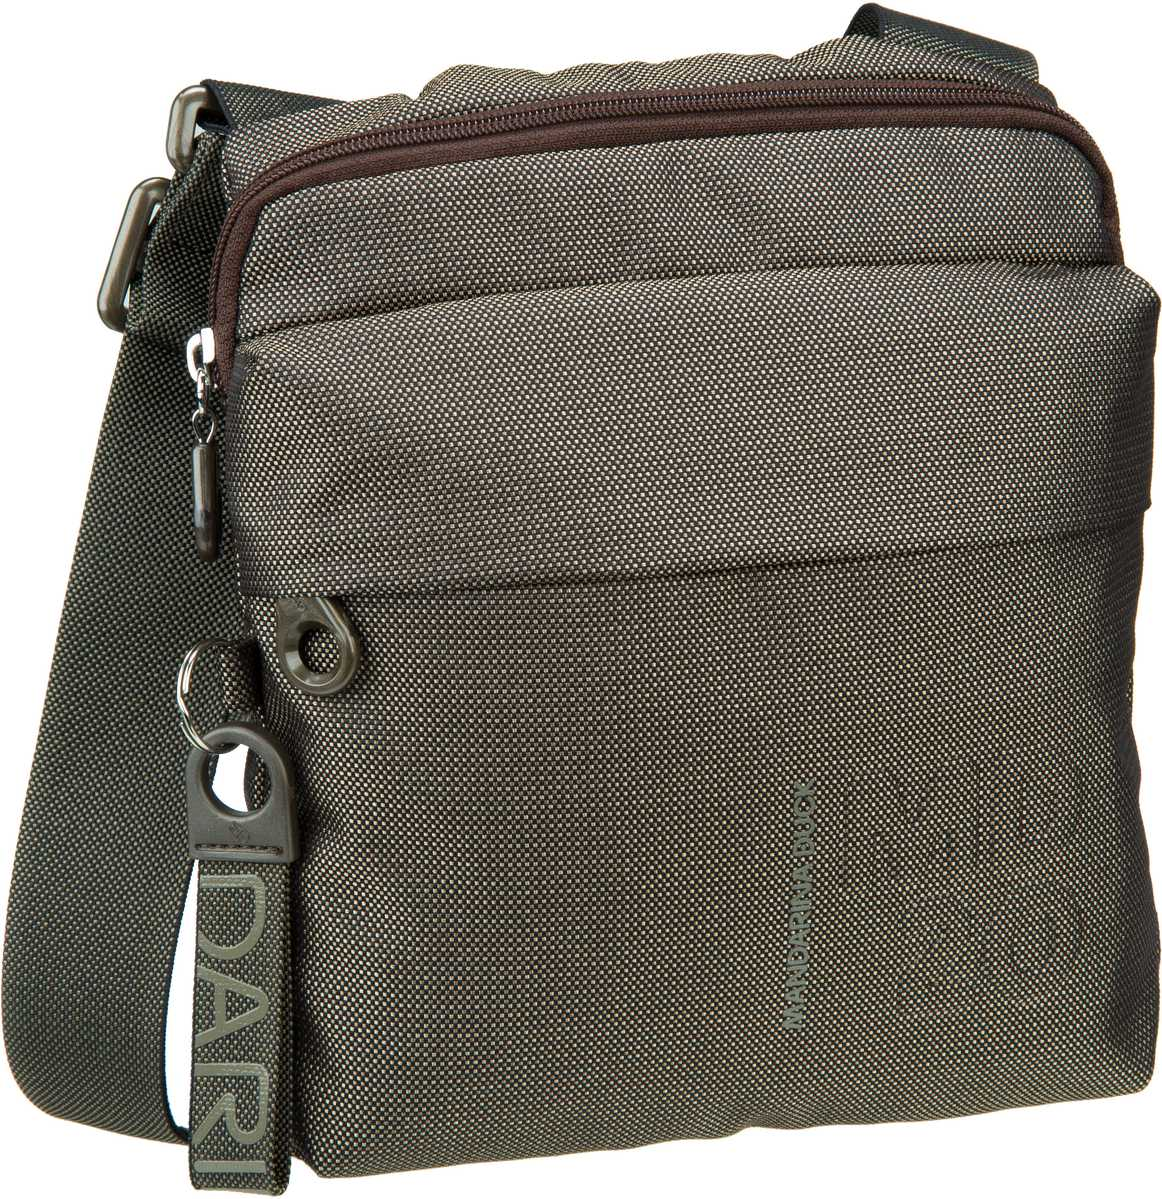 Umhängetasche MD20 Small Crossover Bag QMT04 Pirite